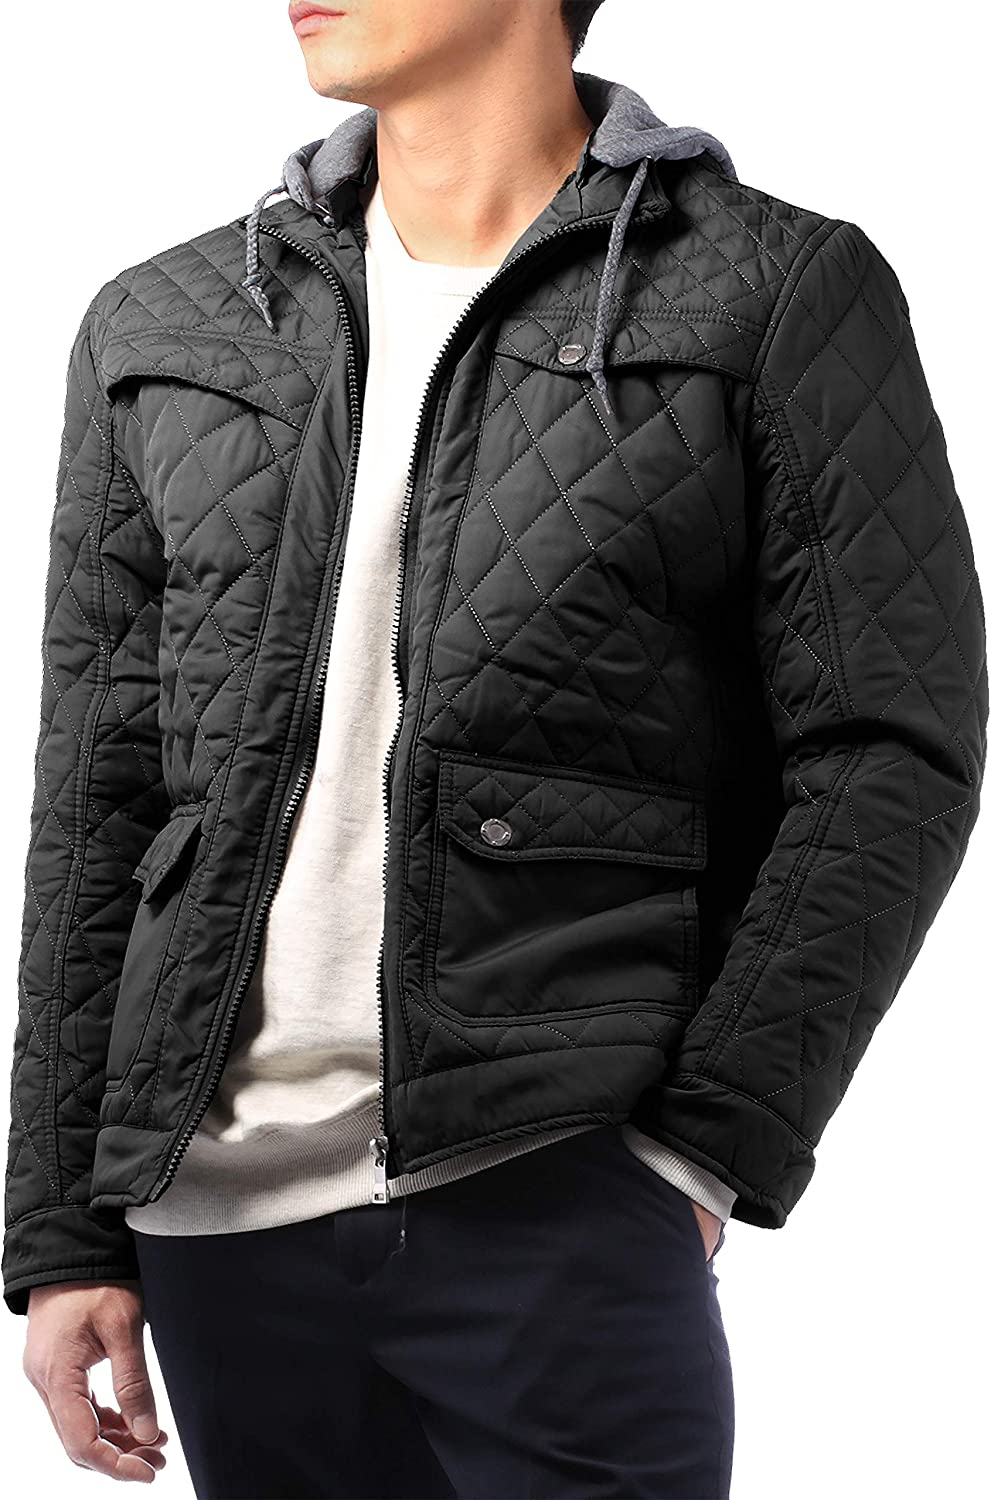 Hat and Beyond Mens Premiumd Quilted Winter Jacket Sherpa Fur Lined Padded Outdoor Outerwear Coat